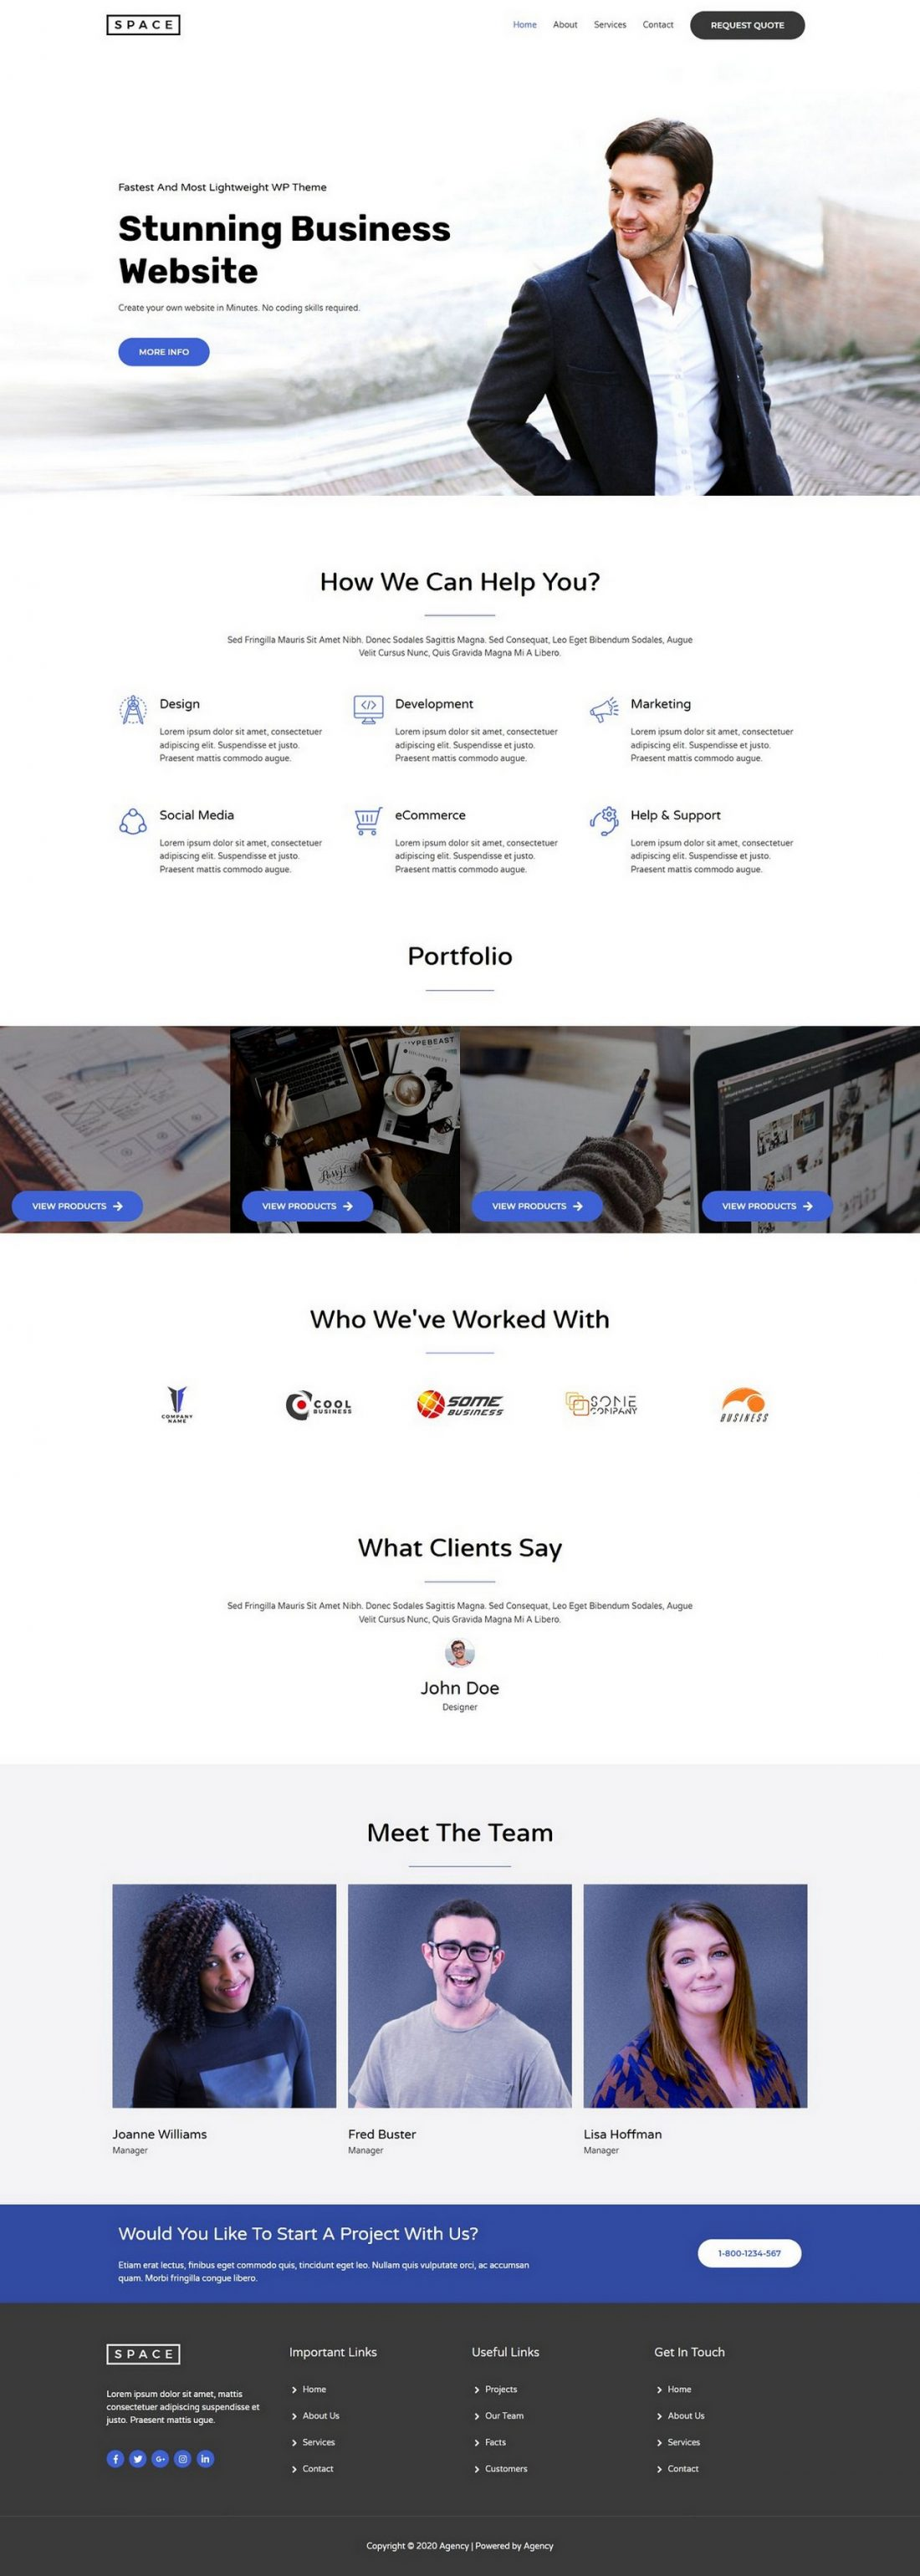 Fagowi.com Website Design Templates For Agency S Multipurpose - Home Page Image